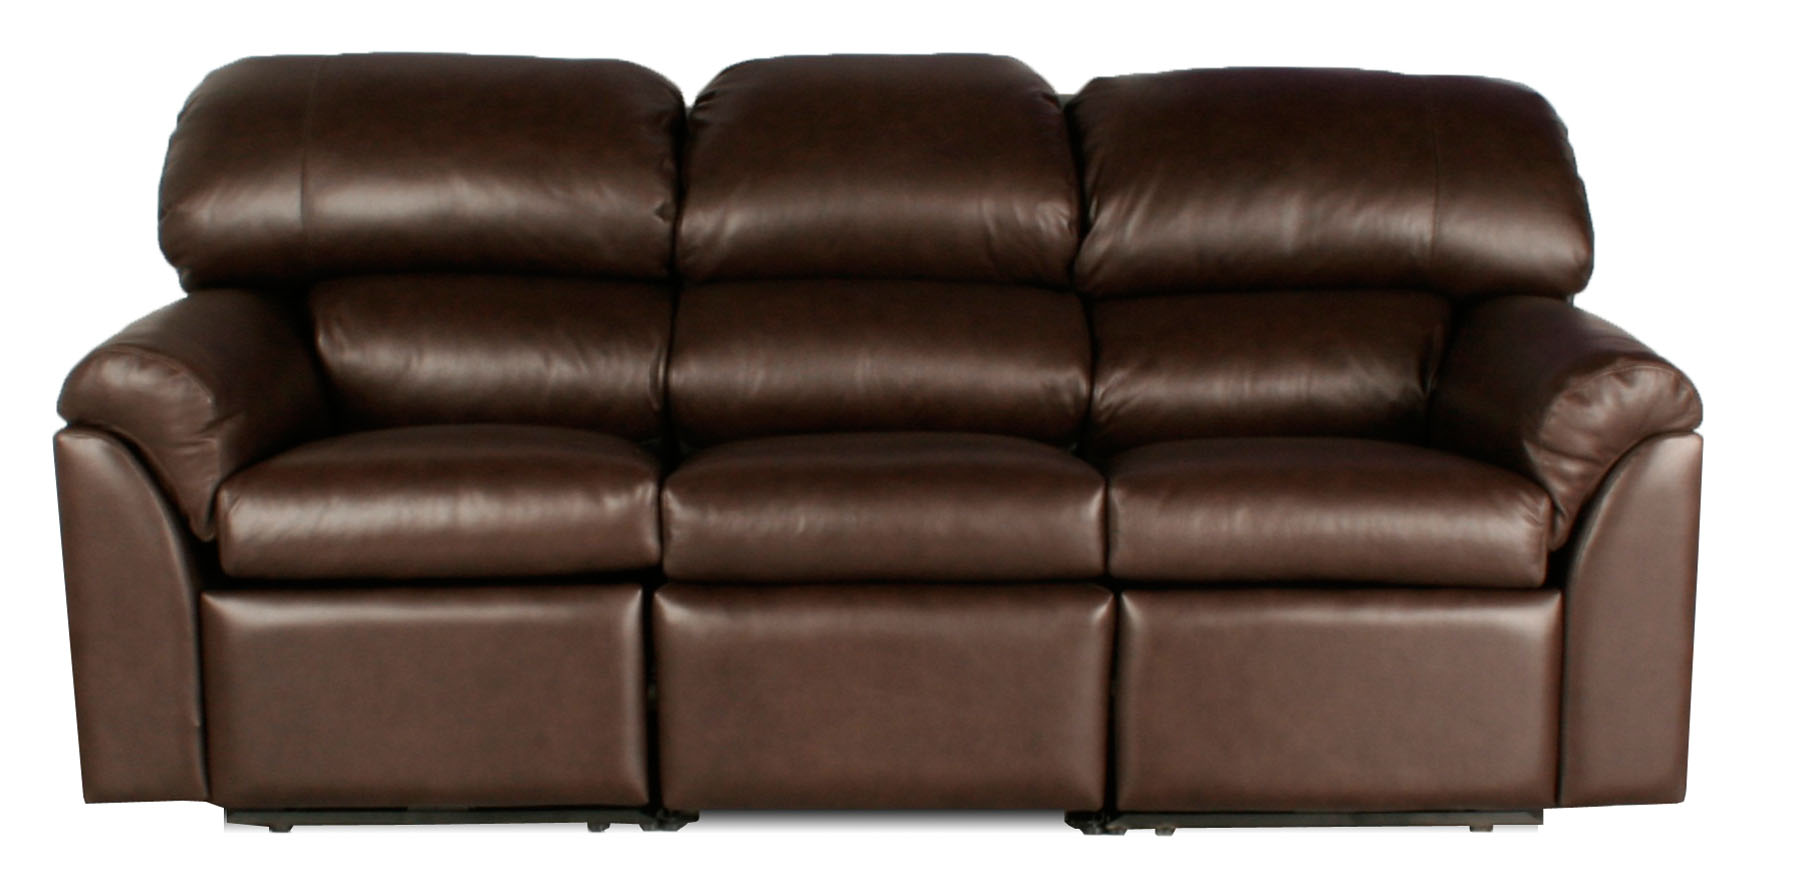 Canyon Reclining Leather Sofa